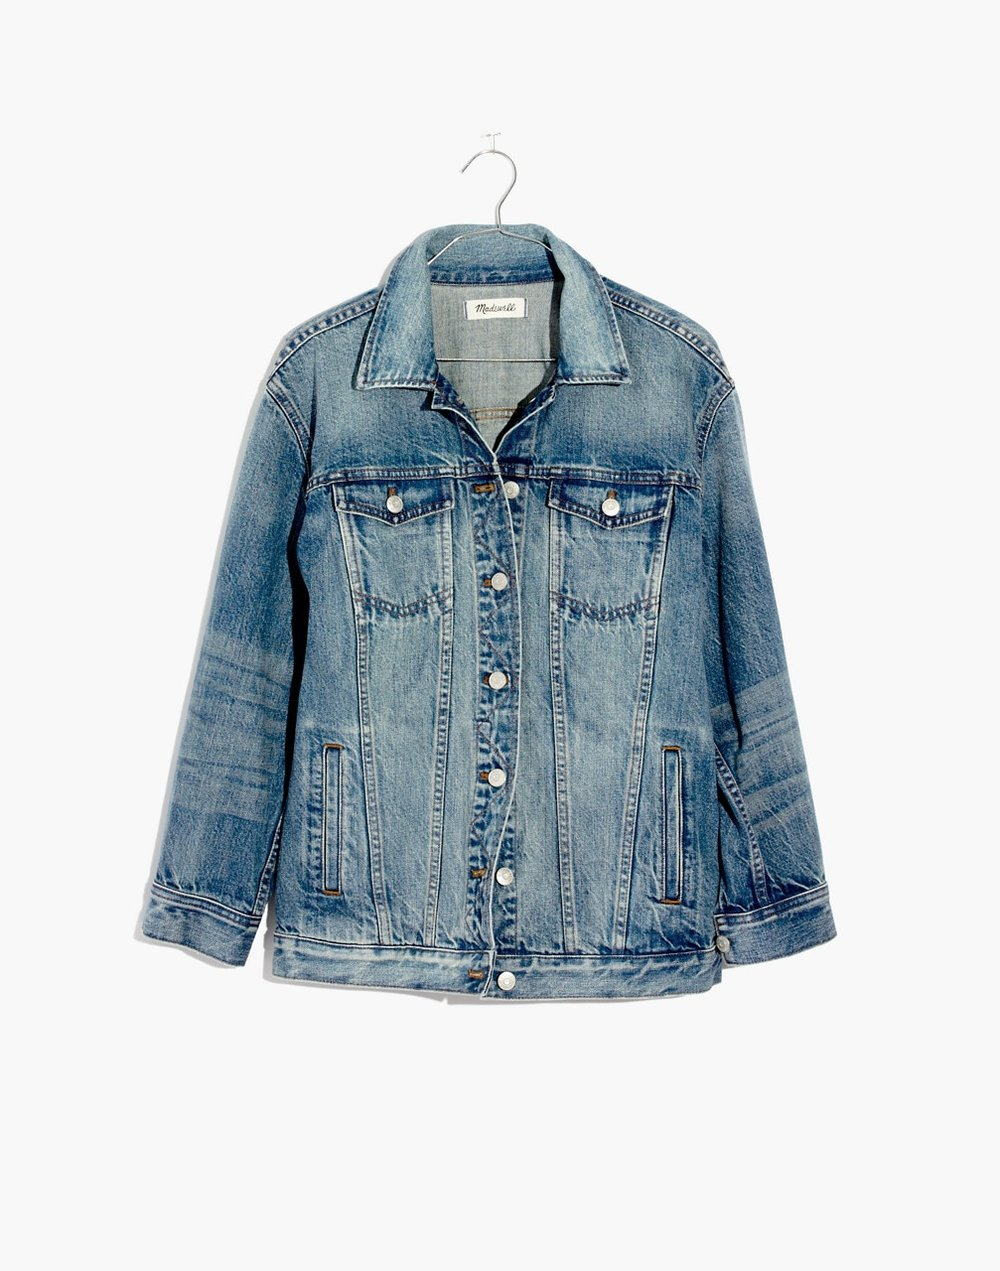 THE OVERSIZED JEAN JACKET IN CAPSTONE WASH $128